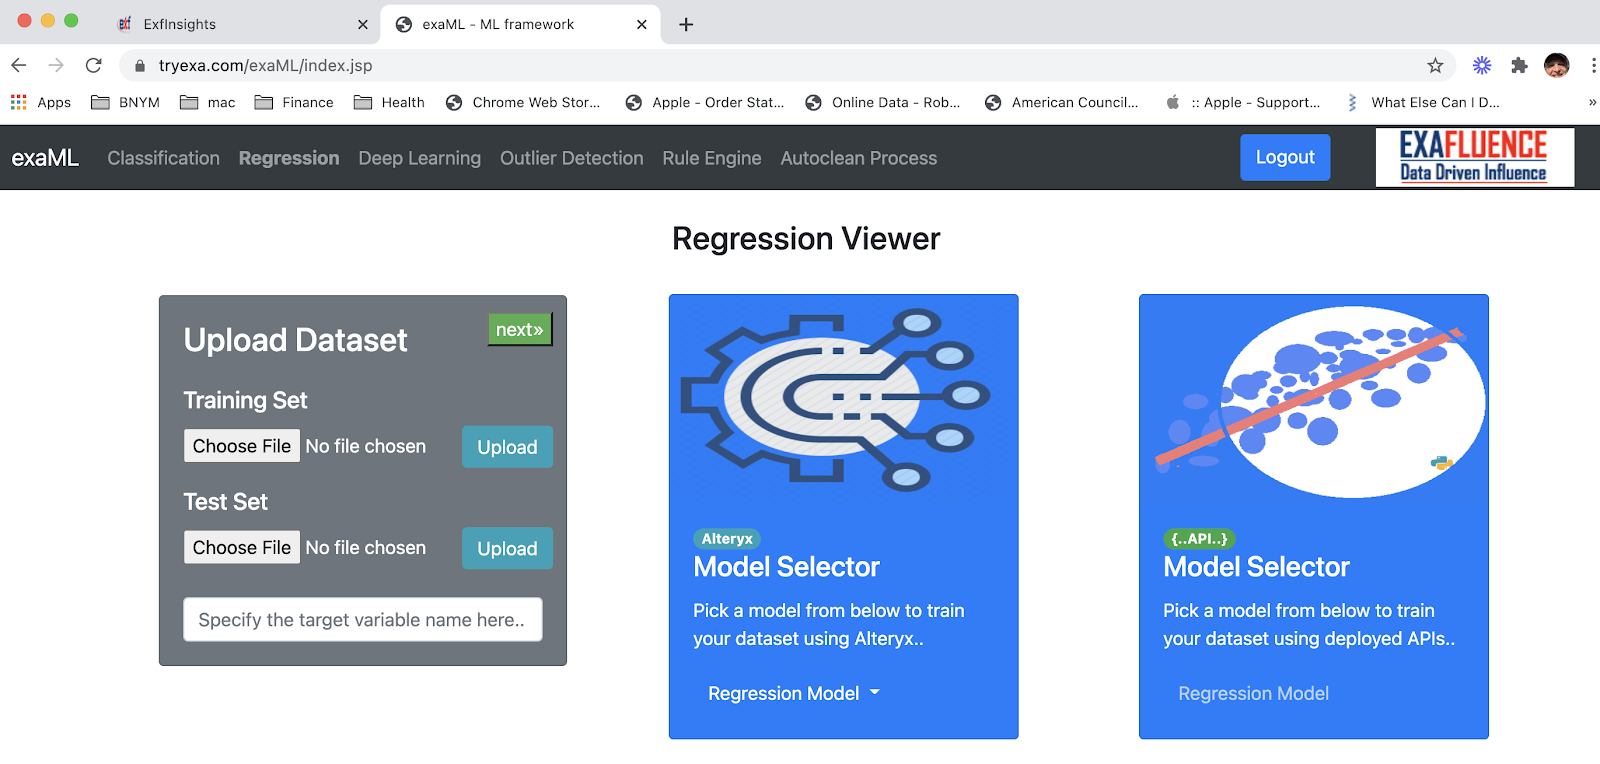 Regression Viewer